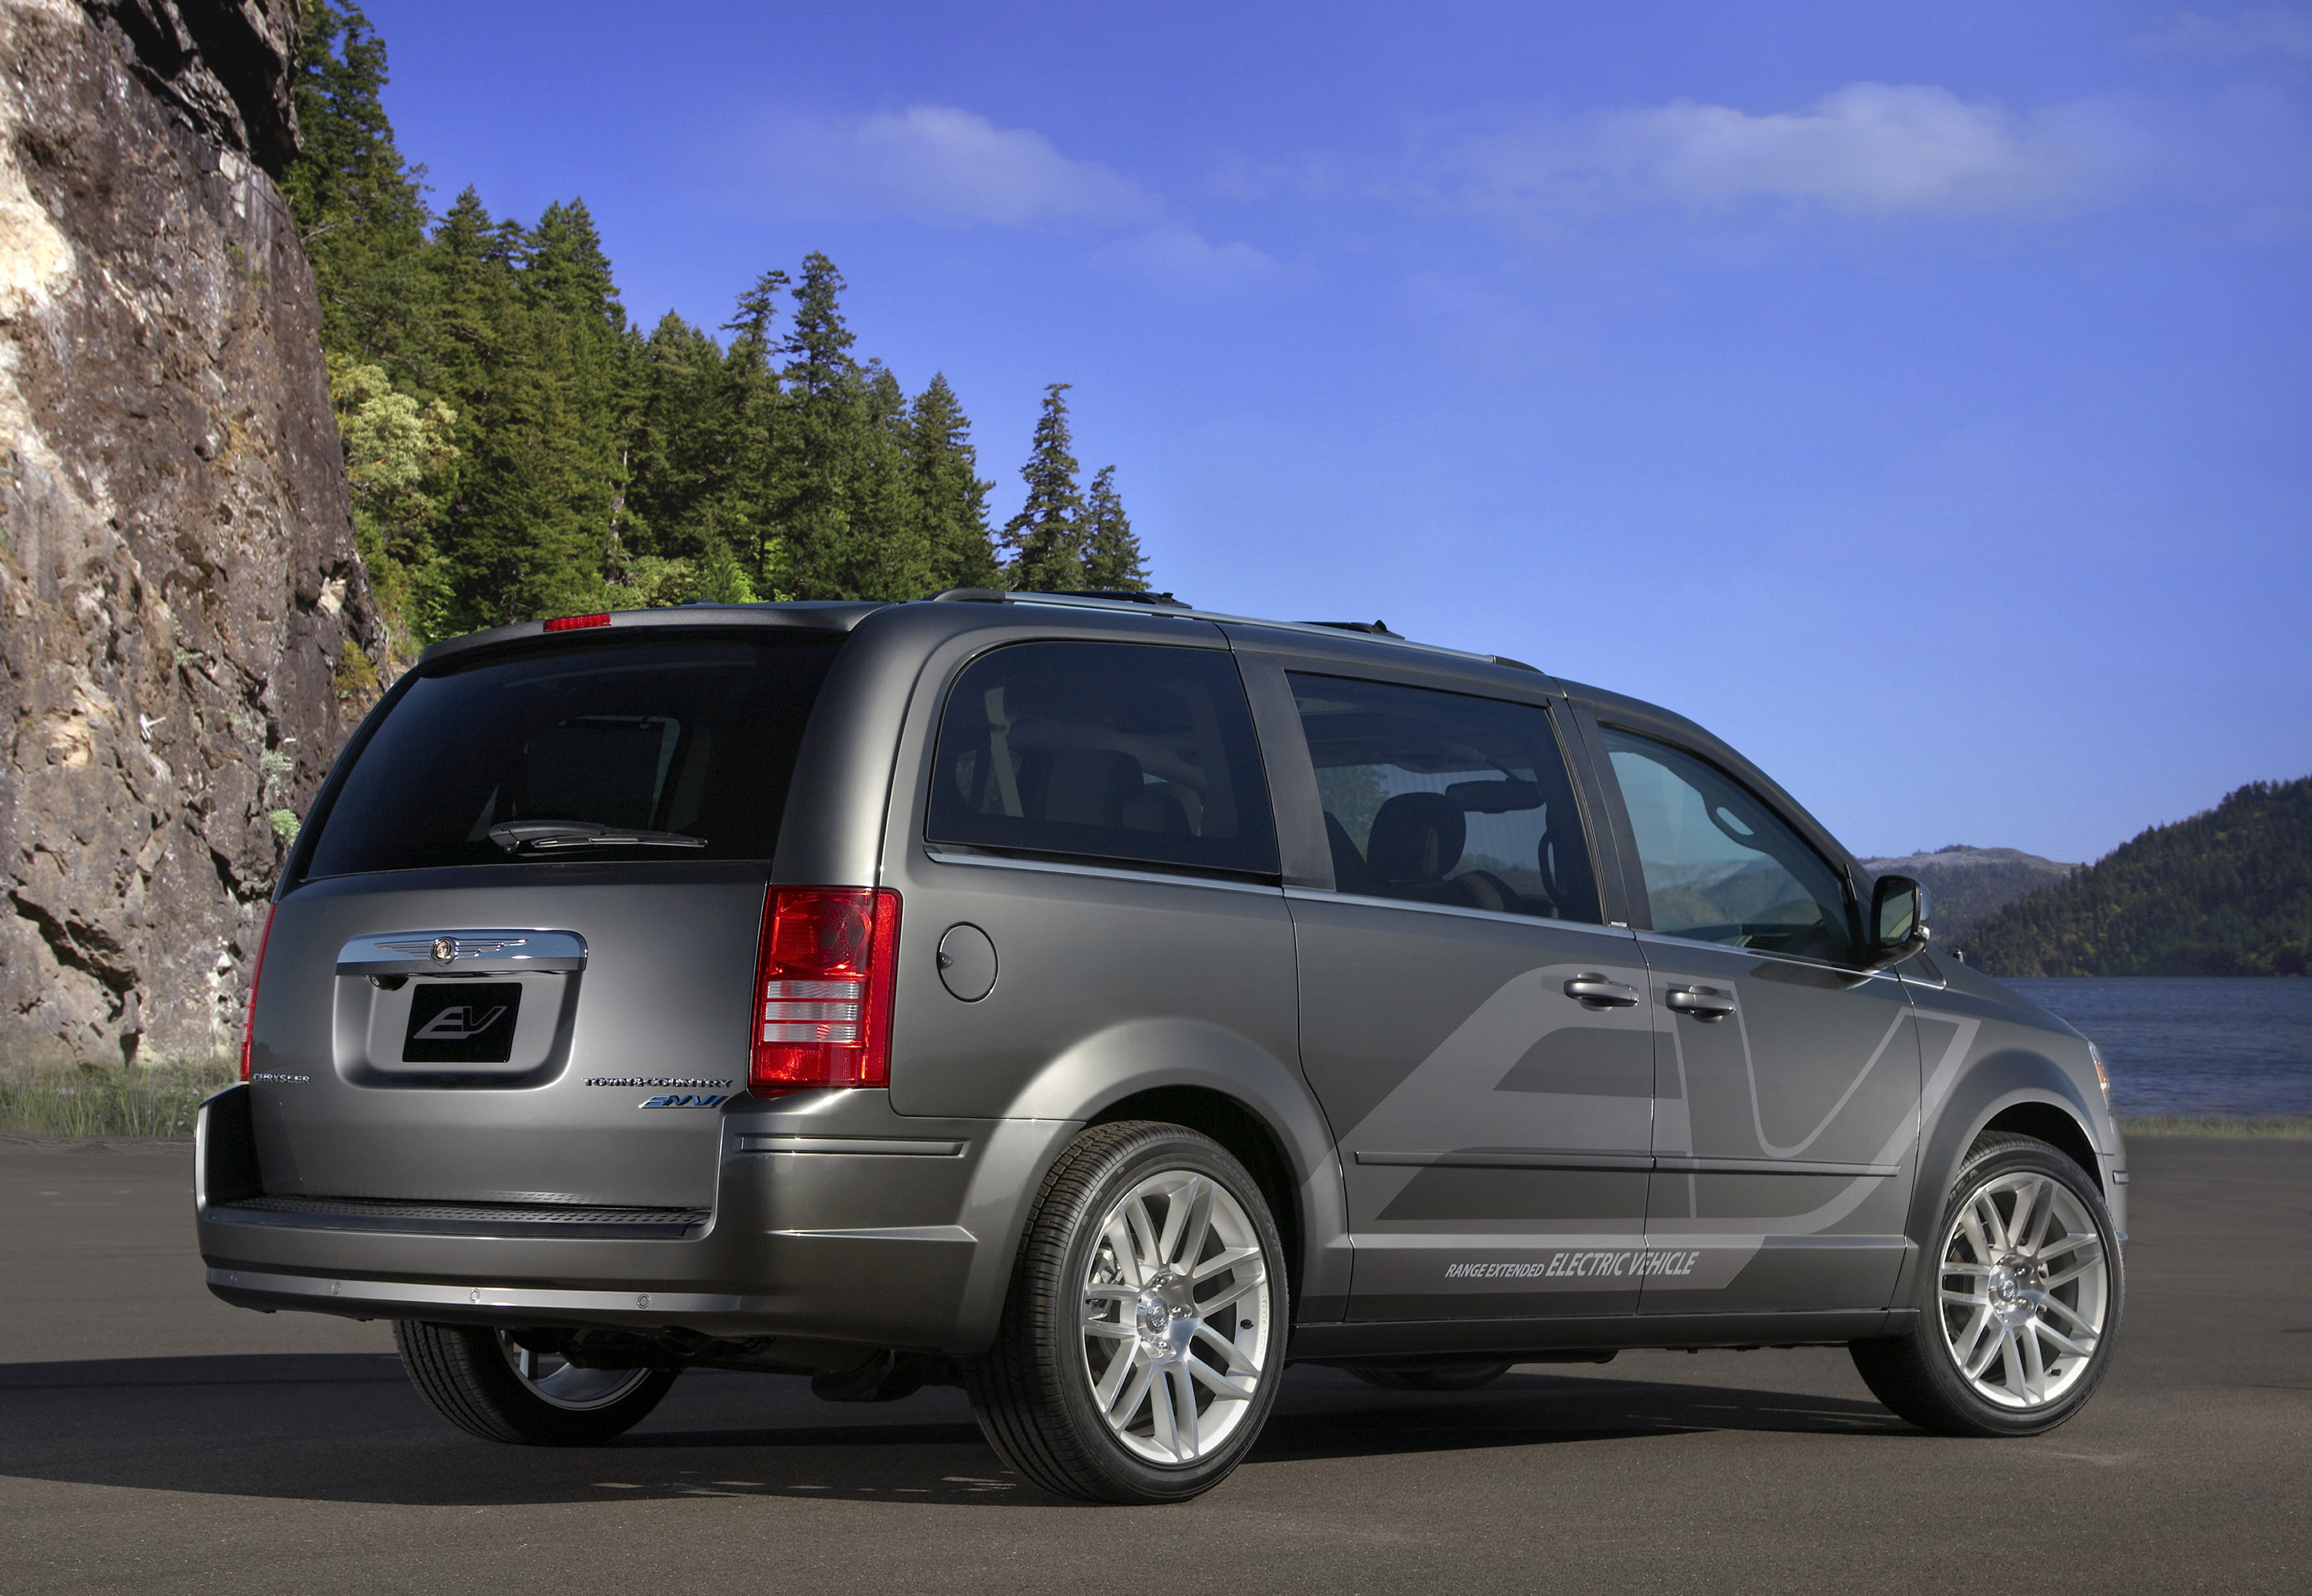 Town And Country Auto Sales >> Chrysler Showcases its Electric Vehicle Future at 2009 ...